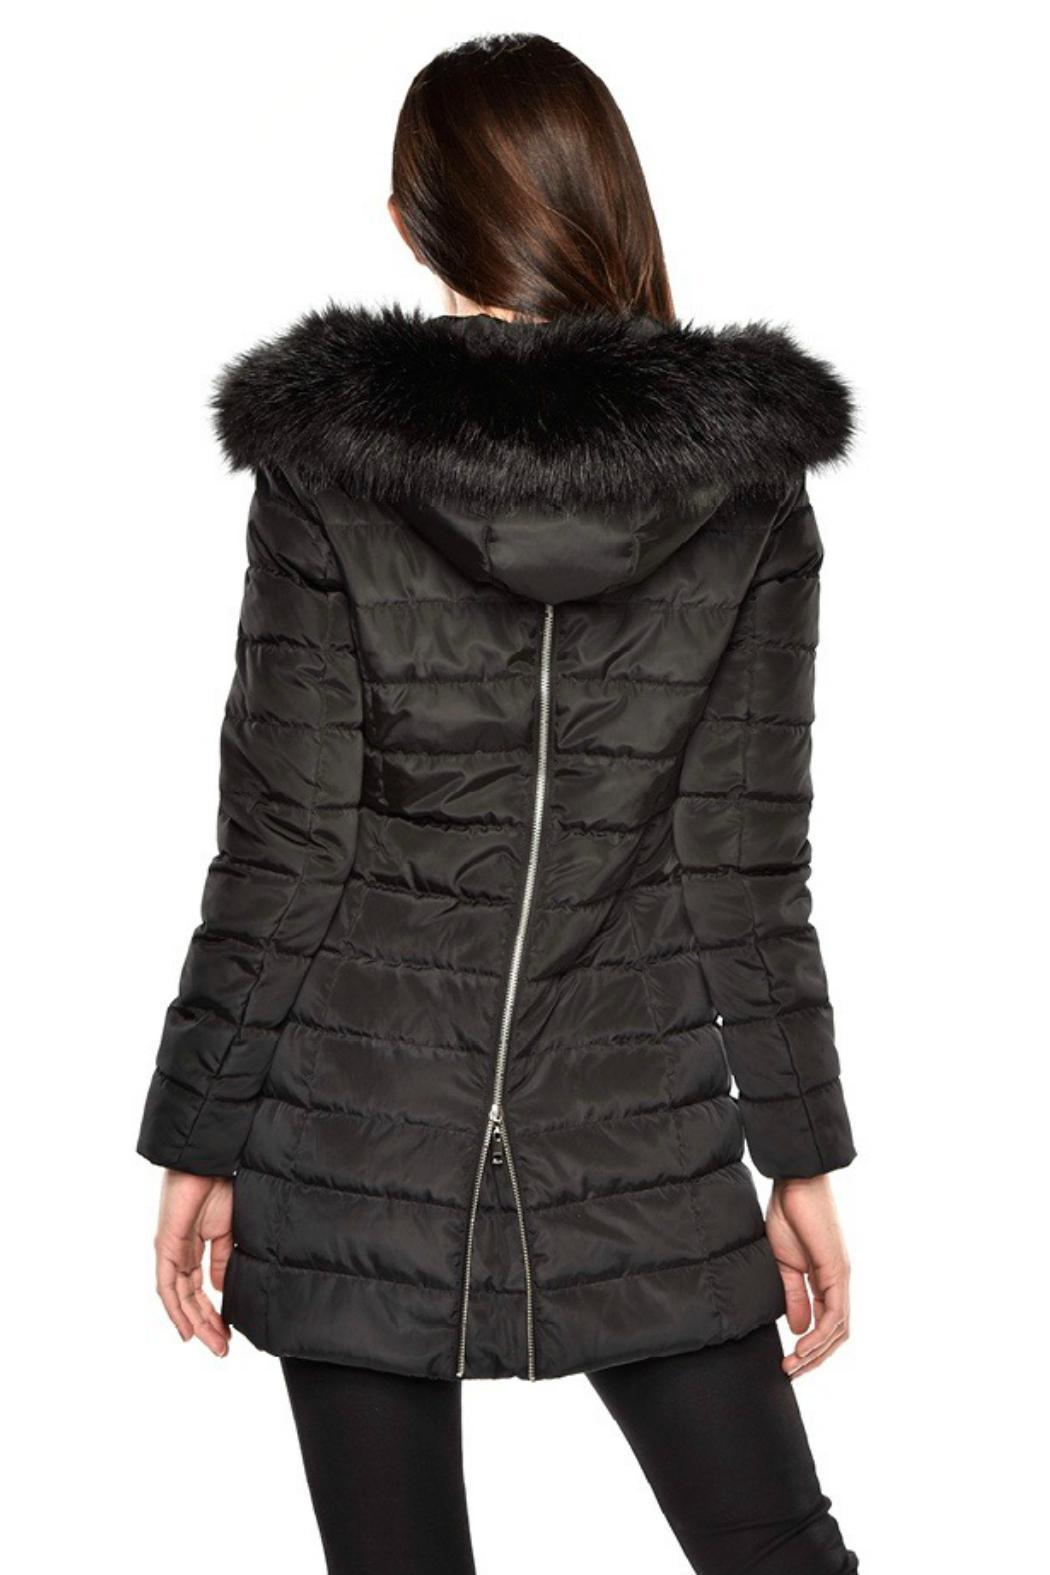 Charlie Paige Hooded Puffer Coat - Front Full Image